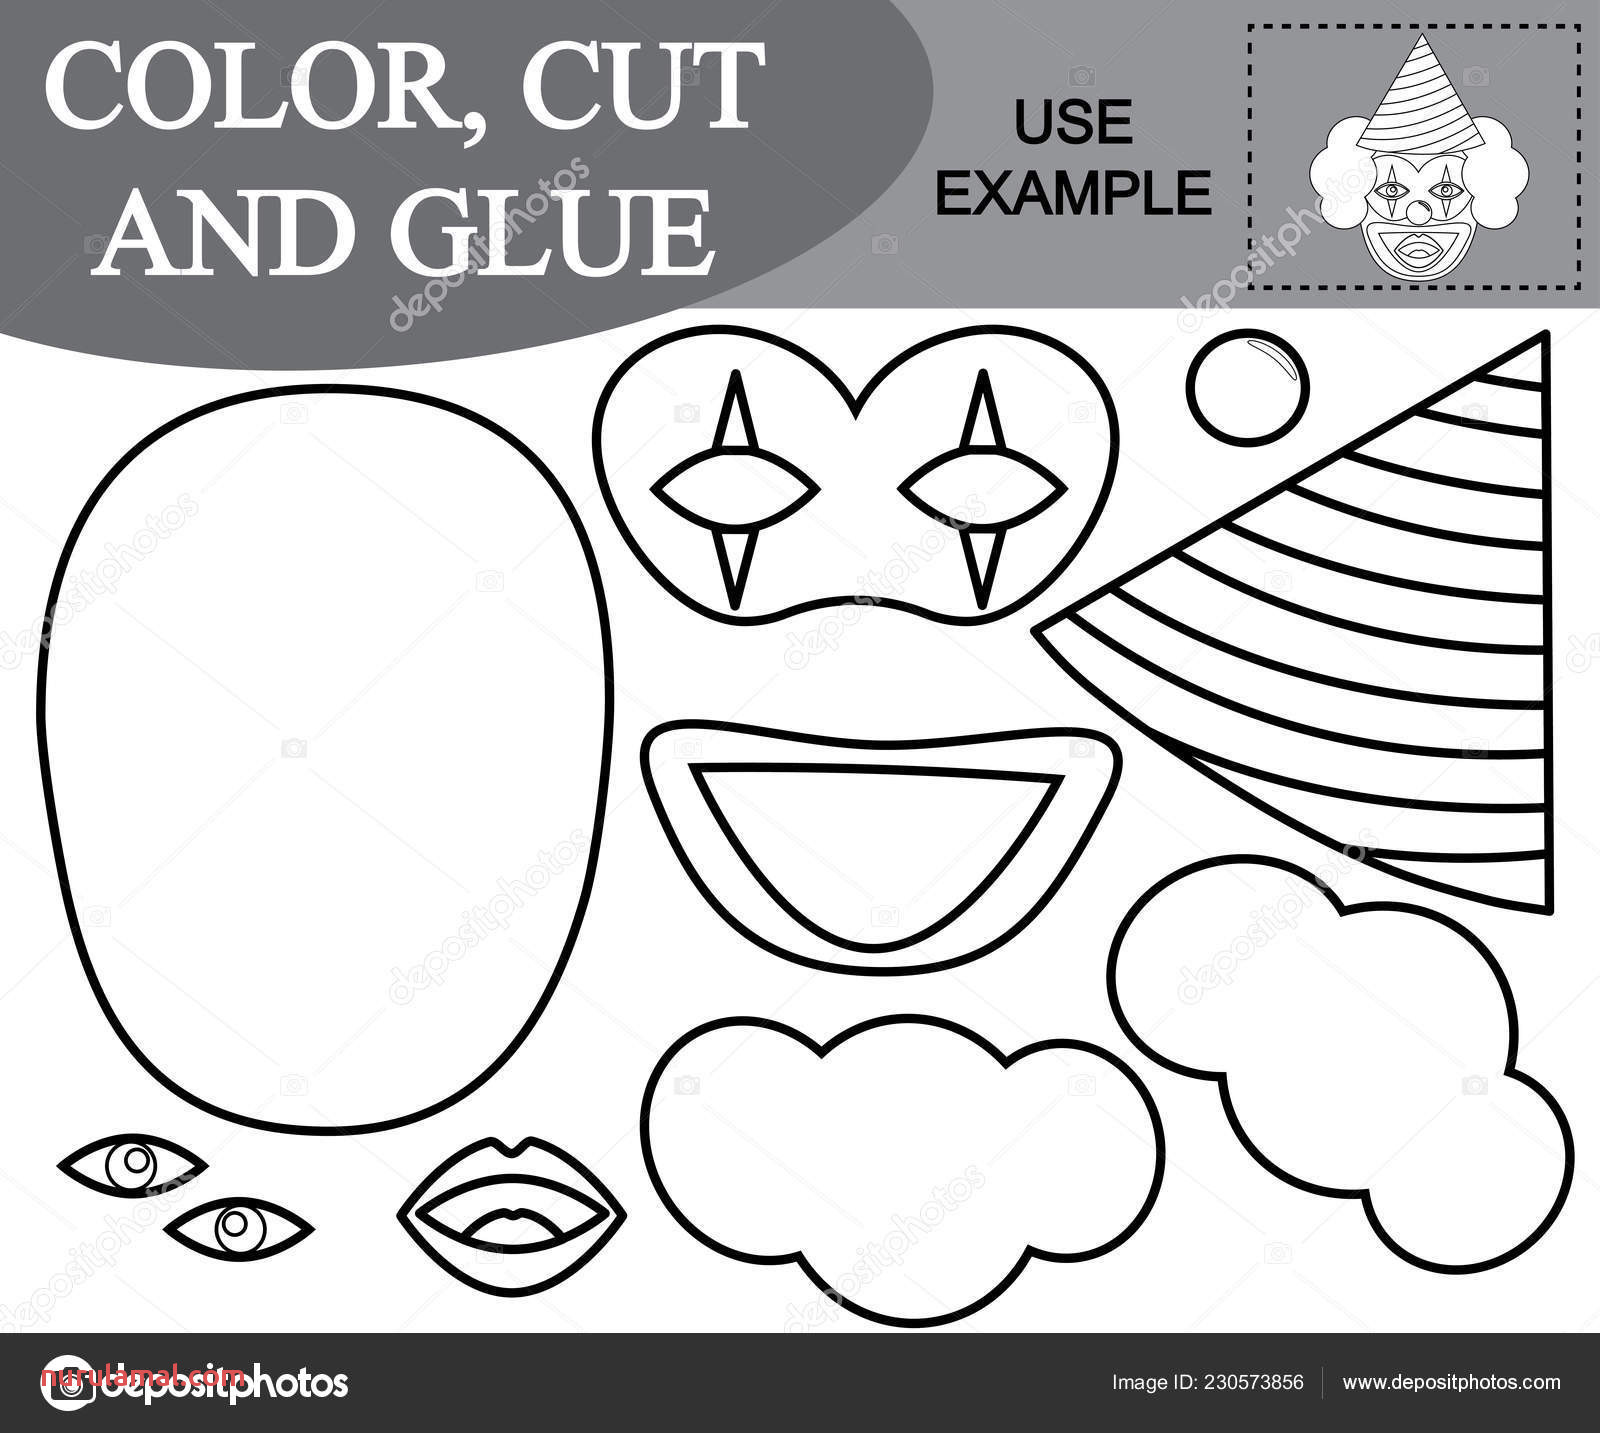 shapes to cut out for preschoolers 2nd grade addition and subtraction worksheets pdf easy mazes print pr printable kindergarten activities 5th activity 8th math help free problems sheets